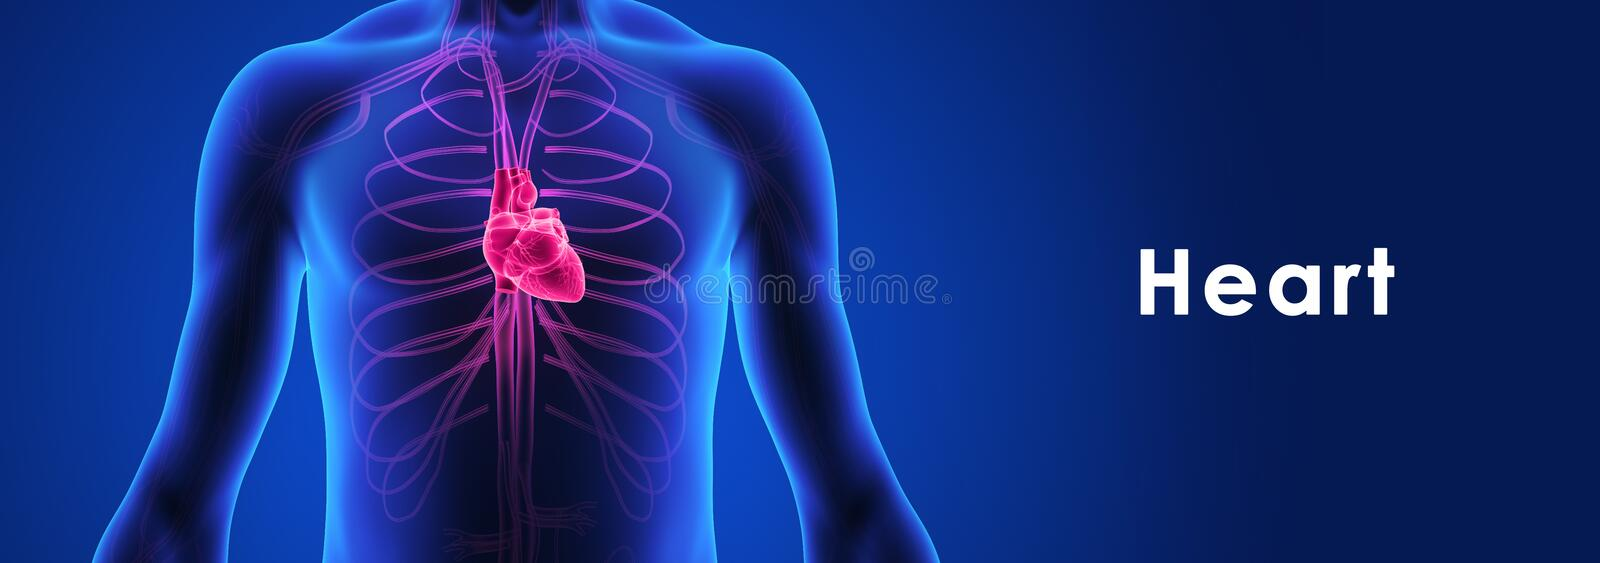 Human Heart vector illustration